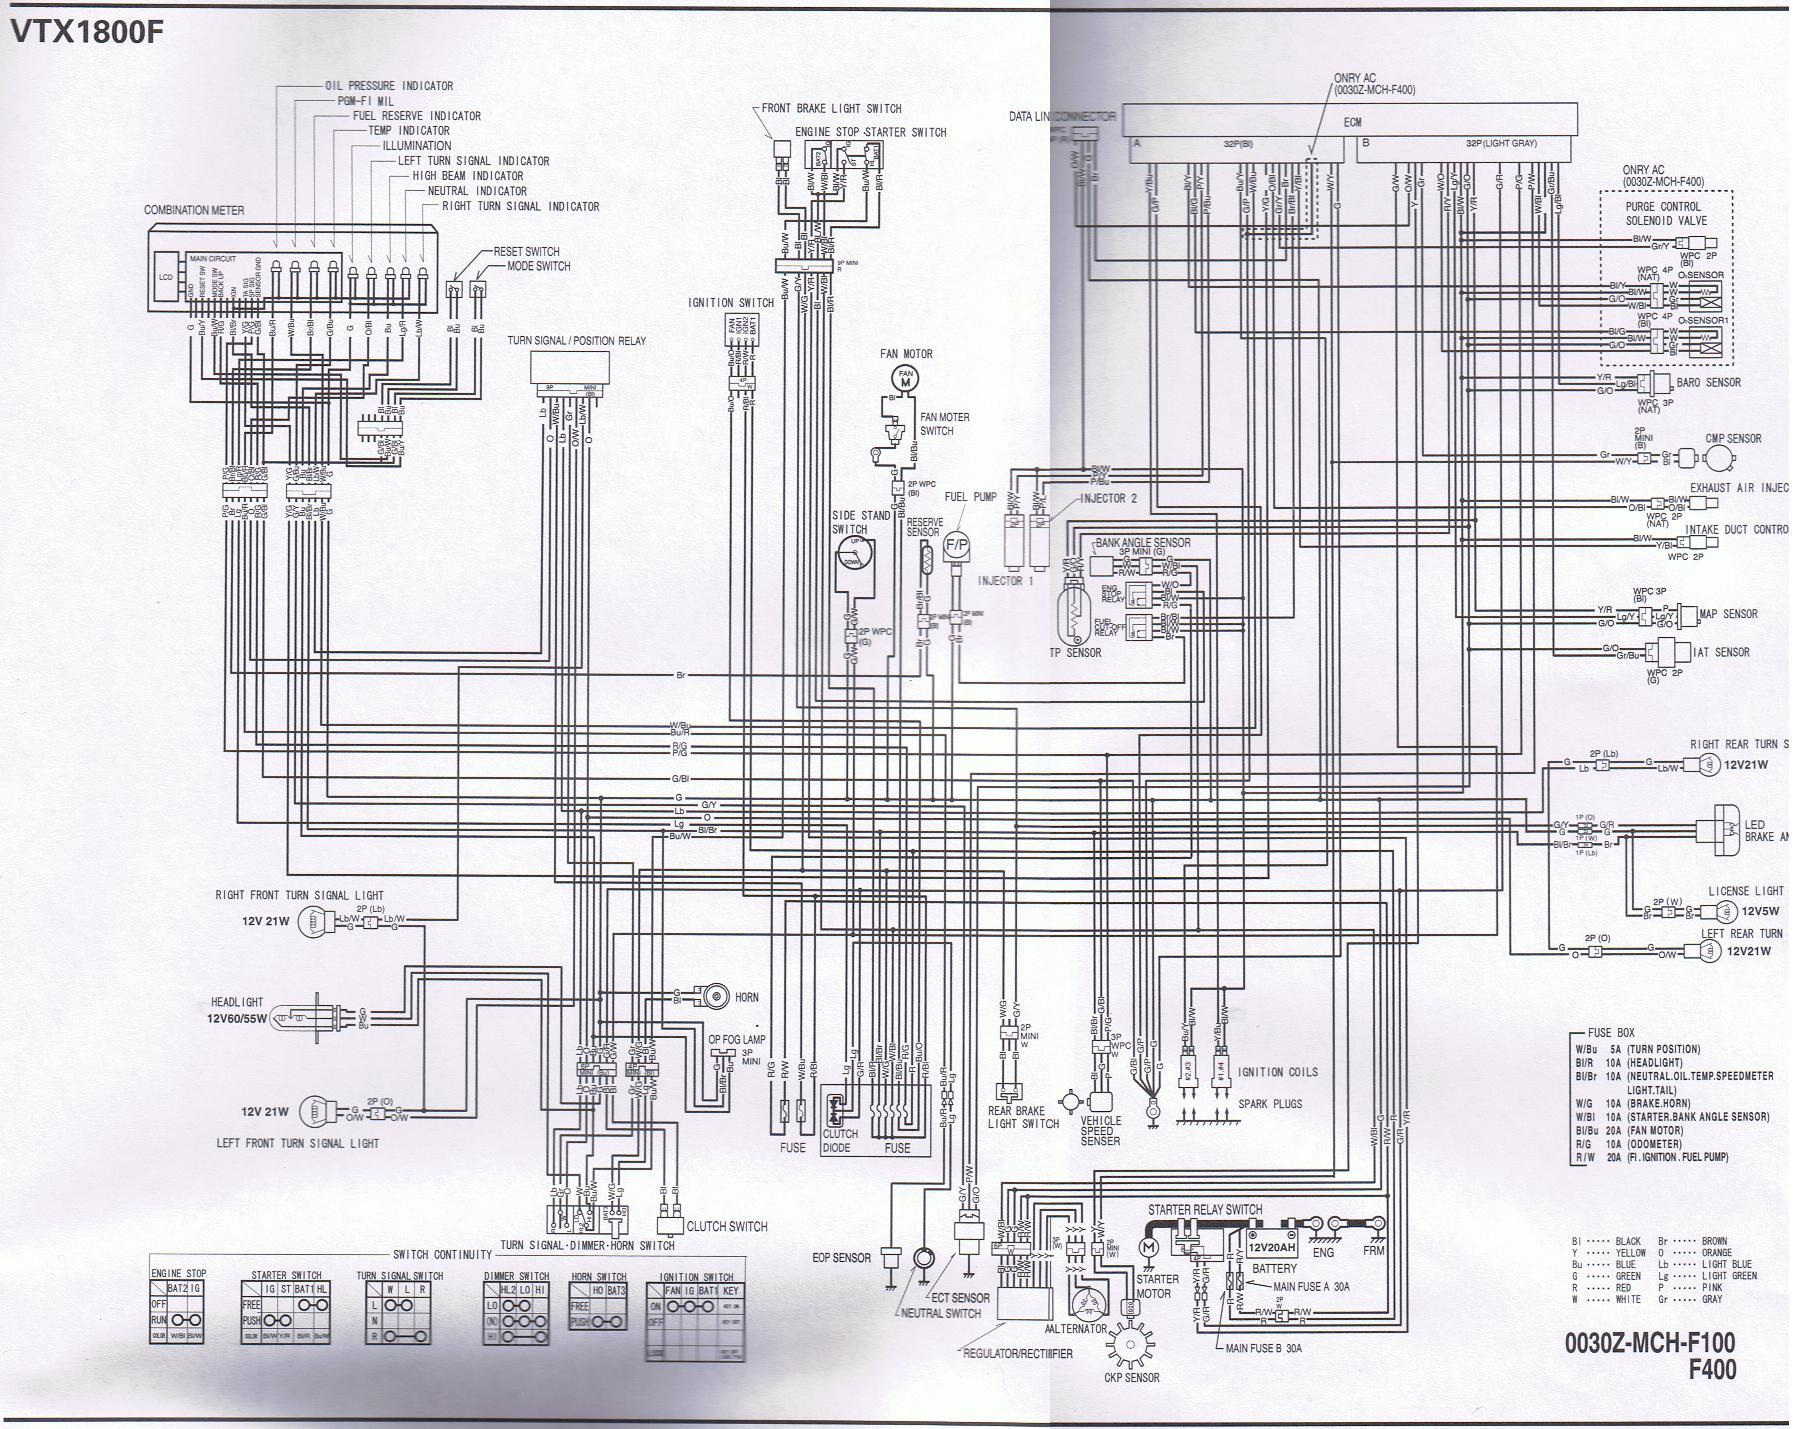 05+_VTX1800_F_schematic honda vtx 1300 headlight wiring diagram honda wiring diagrams  at nearapp.co